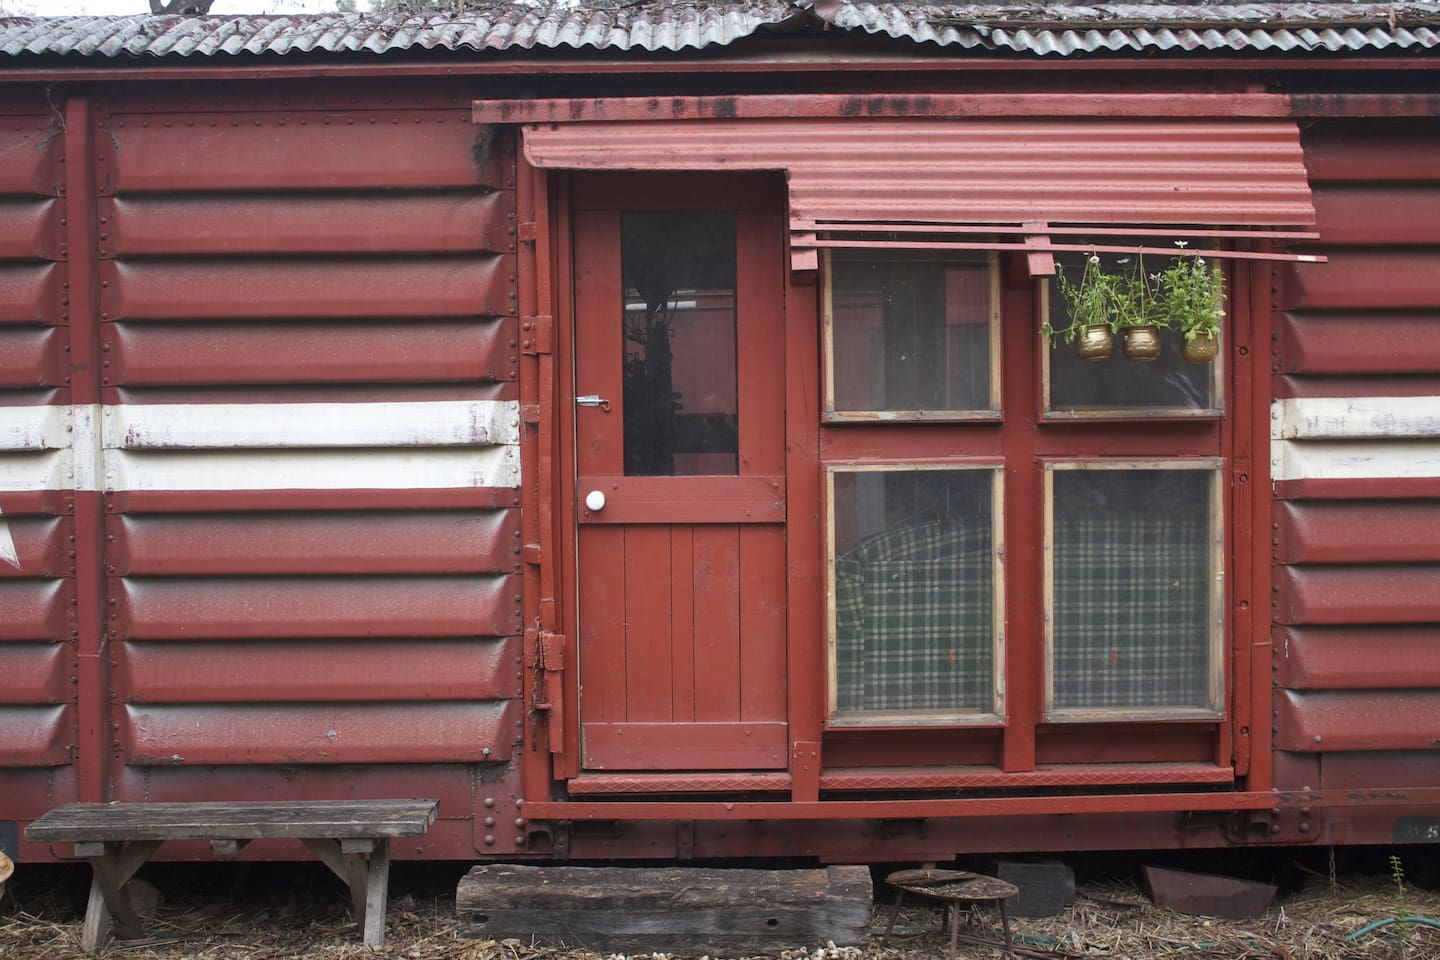 Your own railway carriage